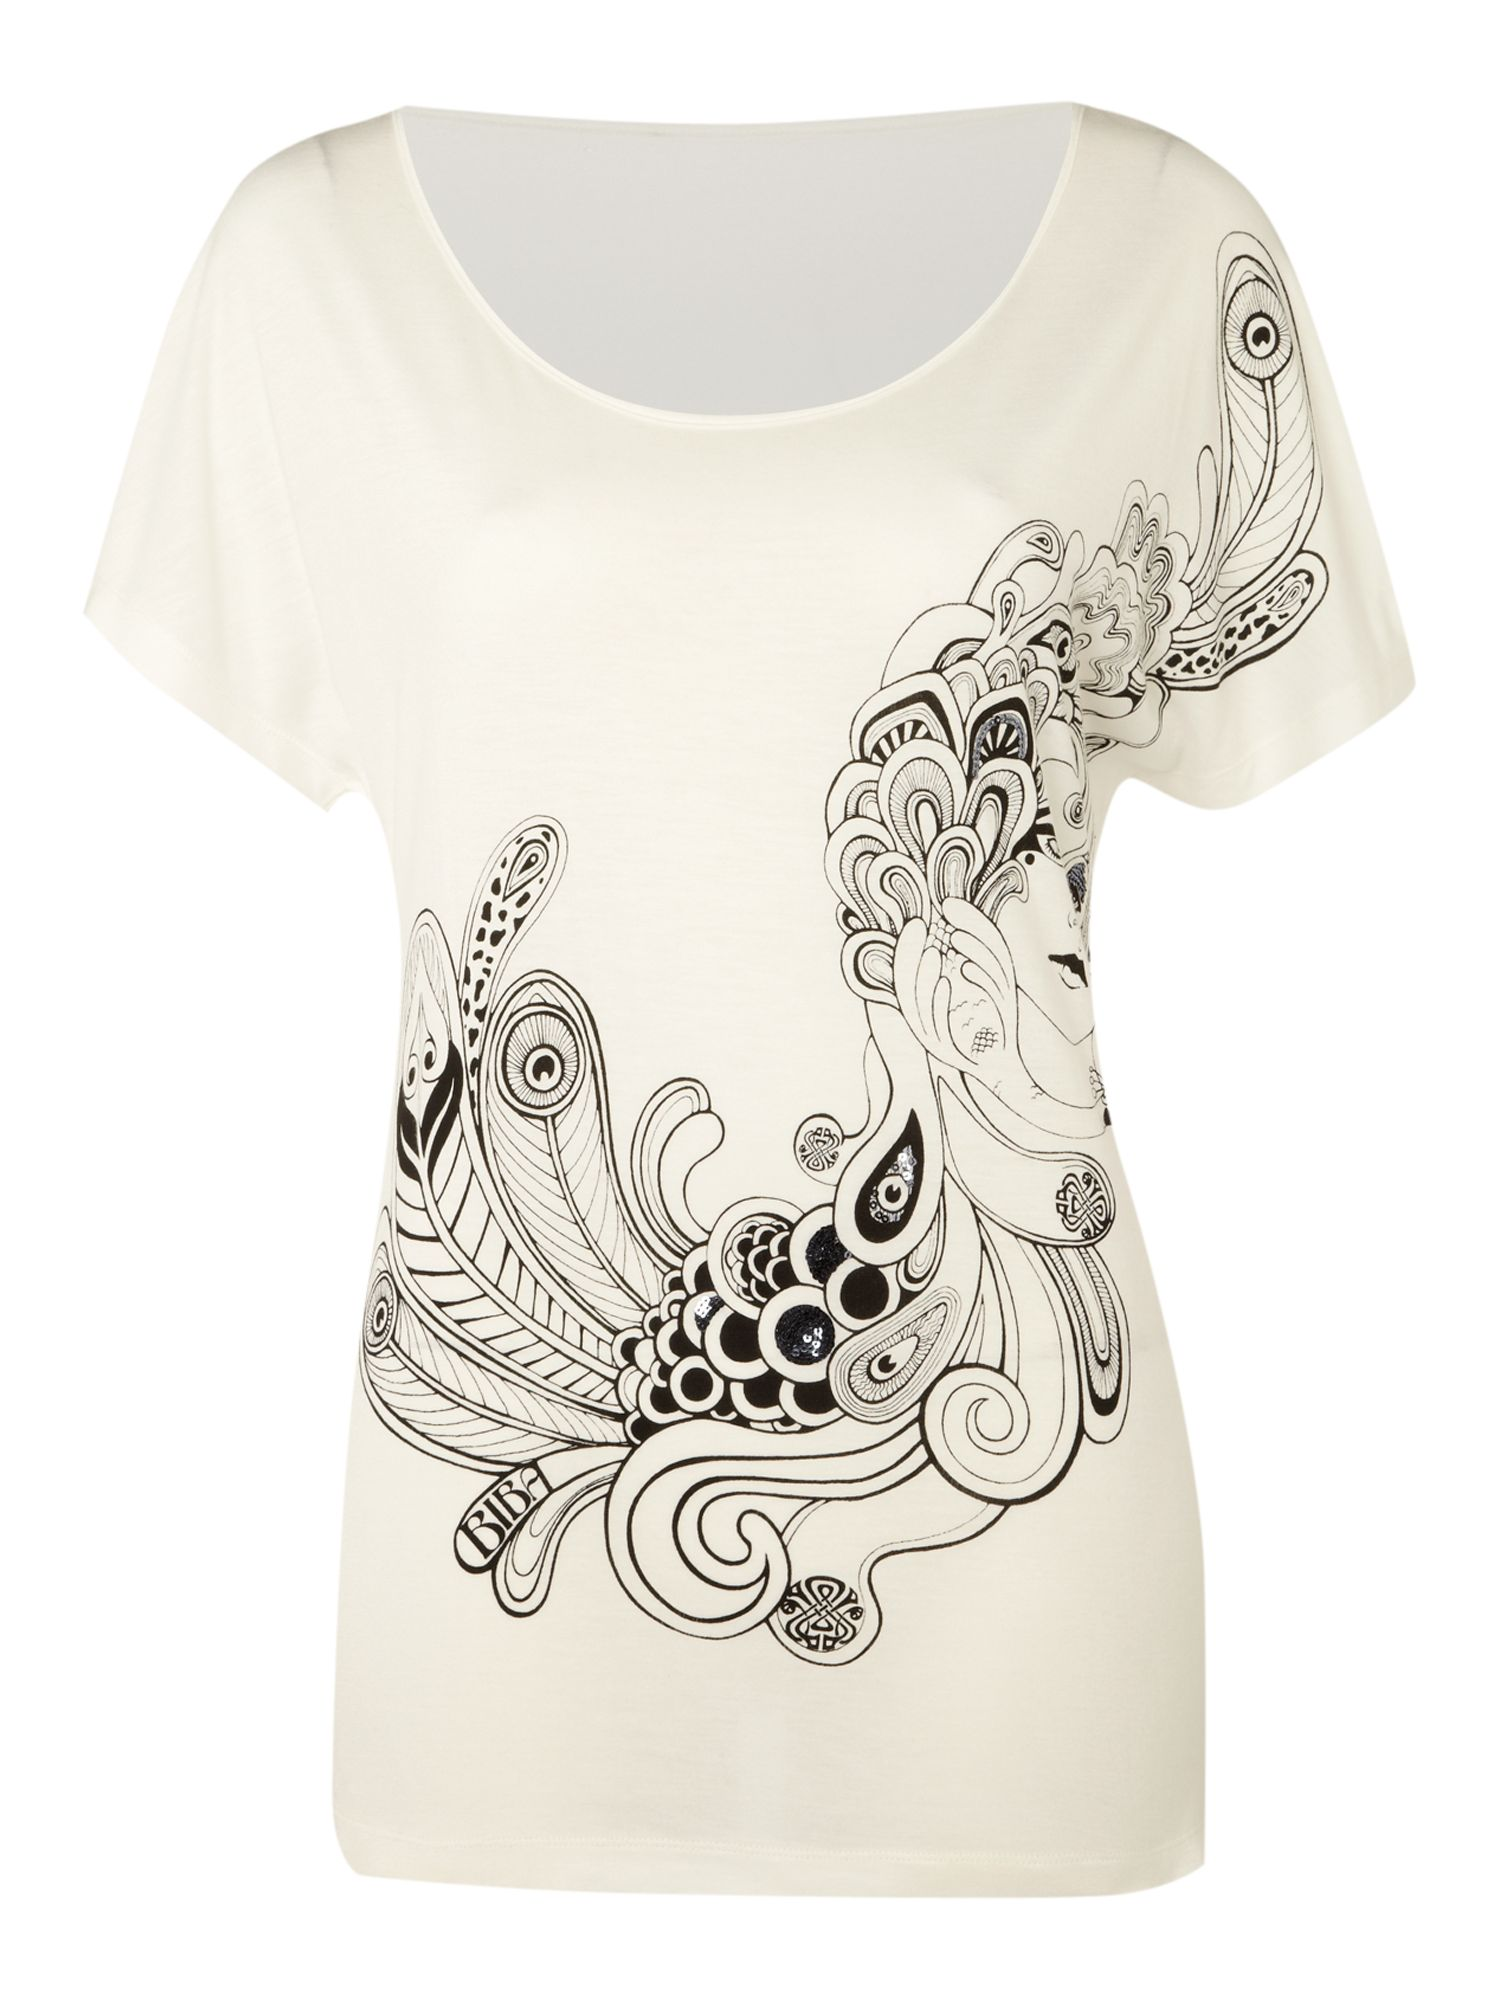 Biba Womens Biba Biba girl print t-shirt, White product image